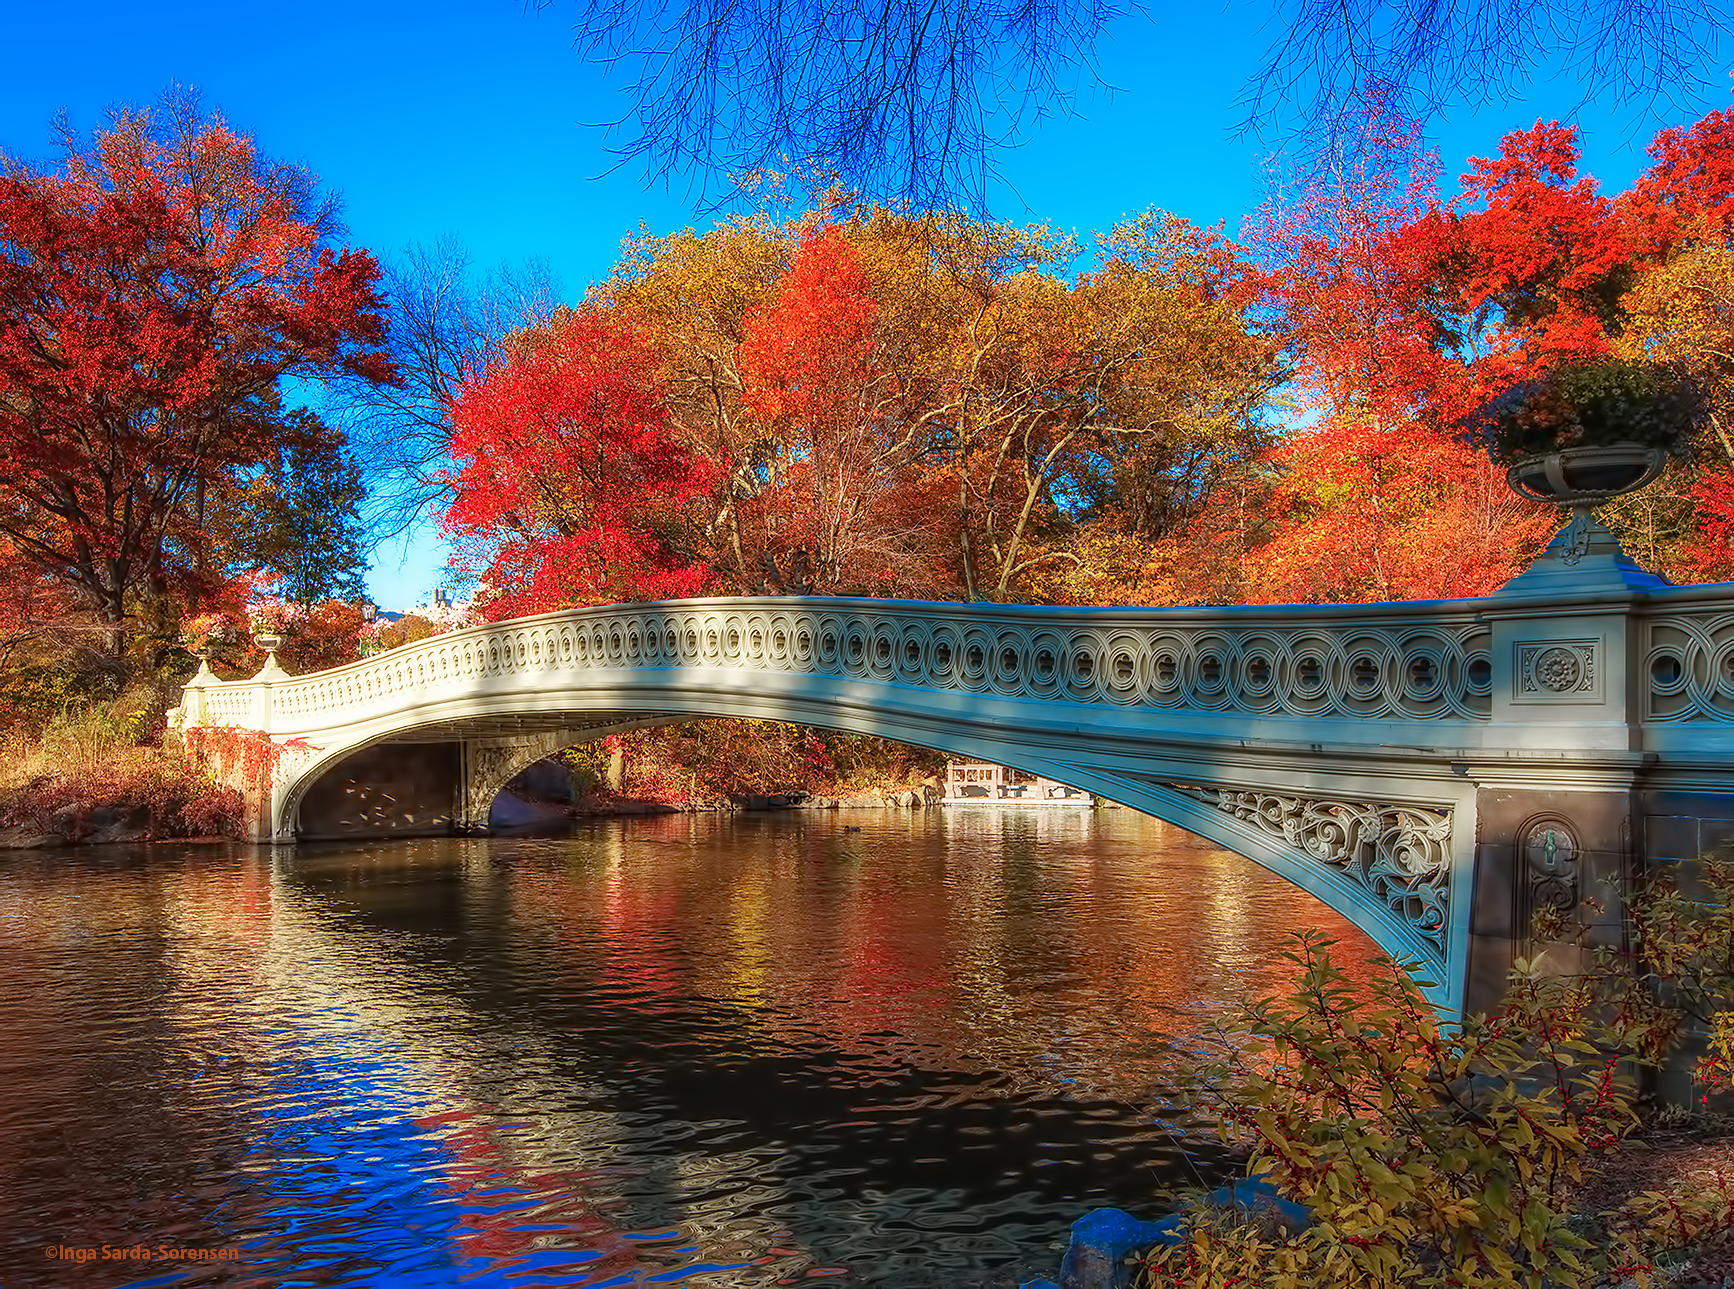 Free Wallpaper Fall 1600x900 Tp Central Park Bow Bridge Nyc Nov 2016 Inga S Angle